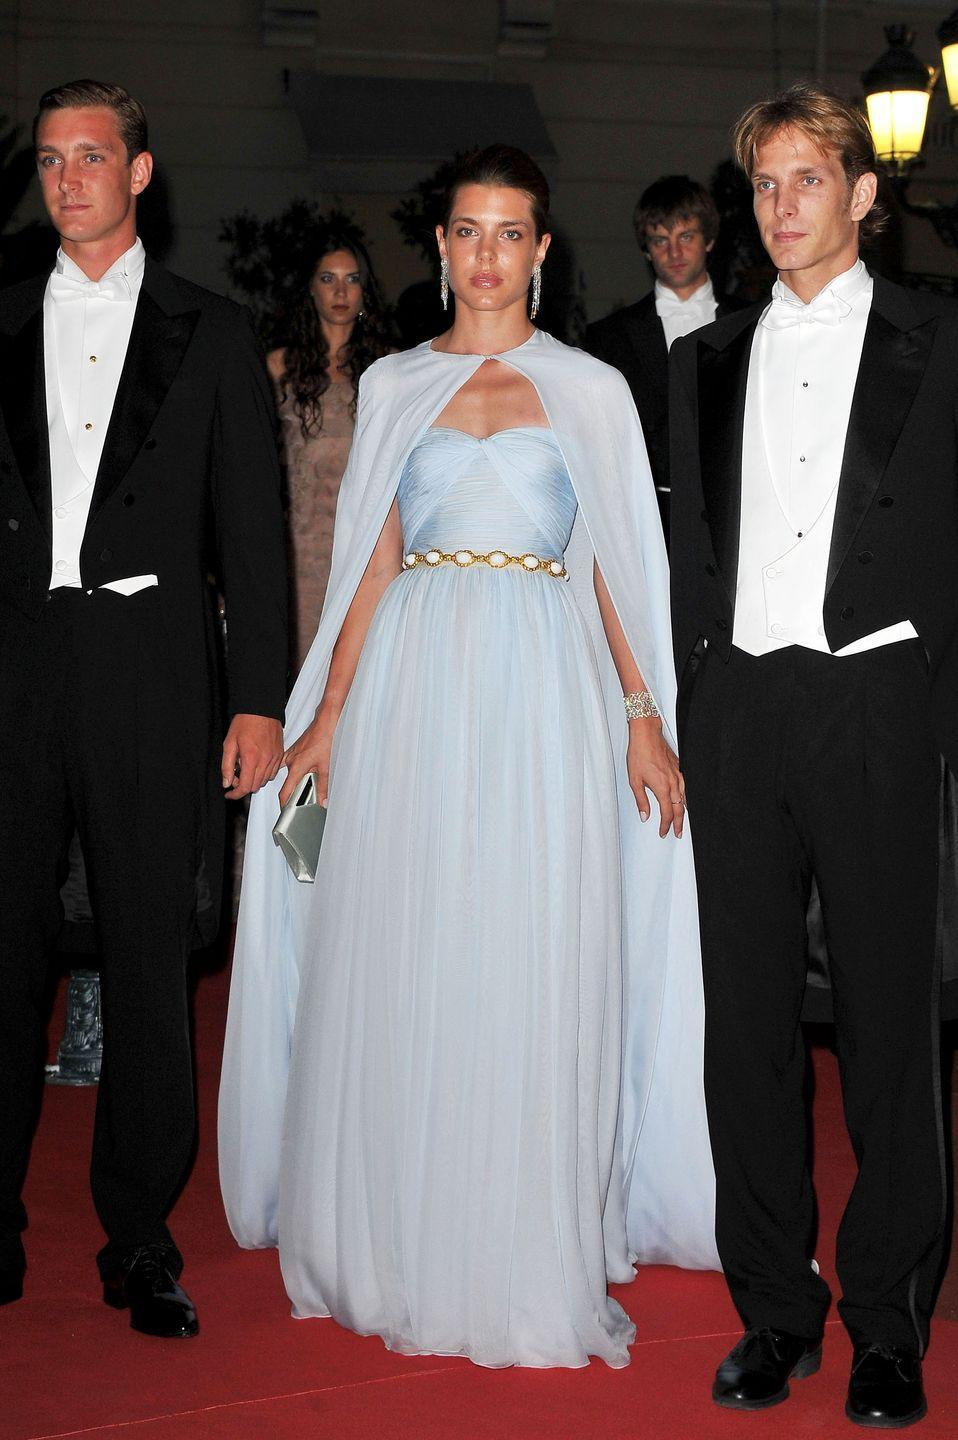 """<p>Grace Kelly's granddaughter set the fashion world abuzz in this powder blue Giambattista Valli gown and cape set. Many publications named <a href=""""https://www.townandcountrymag.com/society/tradition/g30769224/charlotte-casiraghi-photos-style/"""" rel=""""nofollow noopener"""" target=""""_blank"""" data-ylk=""""slk:Charlotte Casiraghi"""" class=""""link rapid-noclick-resp"""">Charlotte Casiraghi</a> the best dressed guest at Prince Albert II of Monaco's 2011 wedding to Princess Charlene. The young royal has since made a name for herself in the fashion world, even becoming the face of Gucci. <br></p>"""